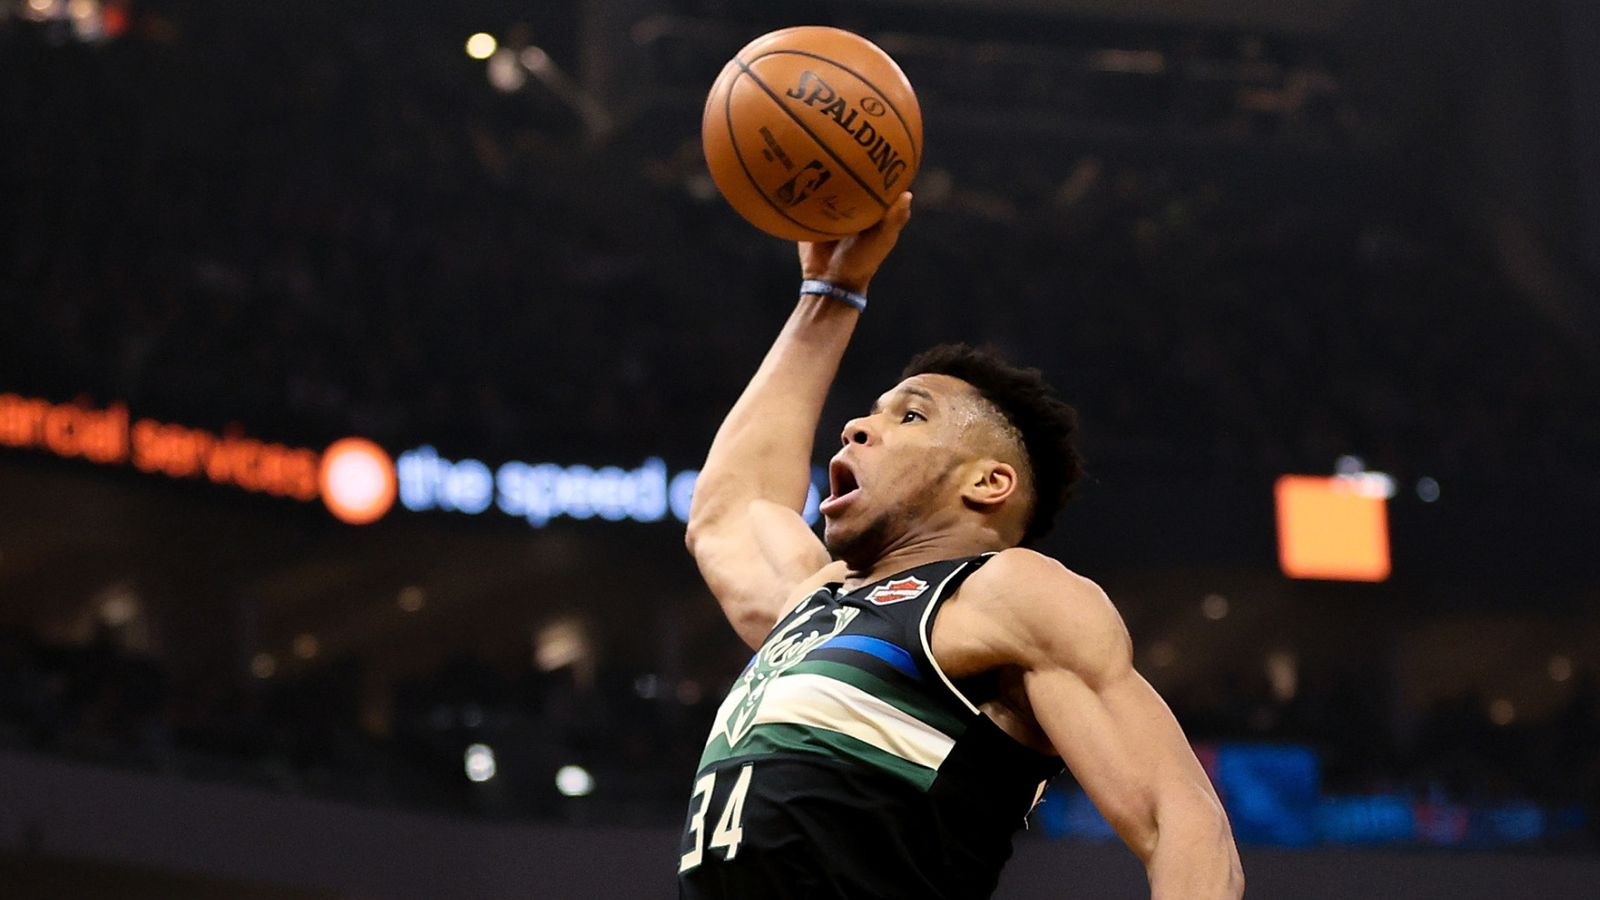 Giannis Antetokounmpo stars to end Thunder's streak ends in blowout loss to Bucks